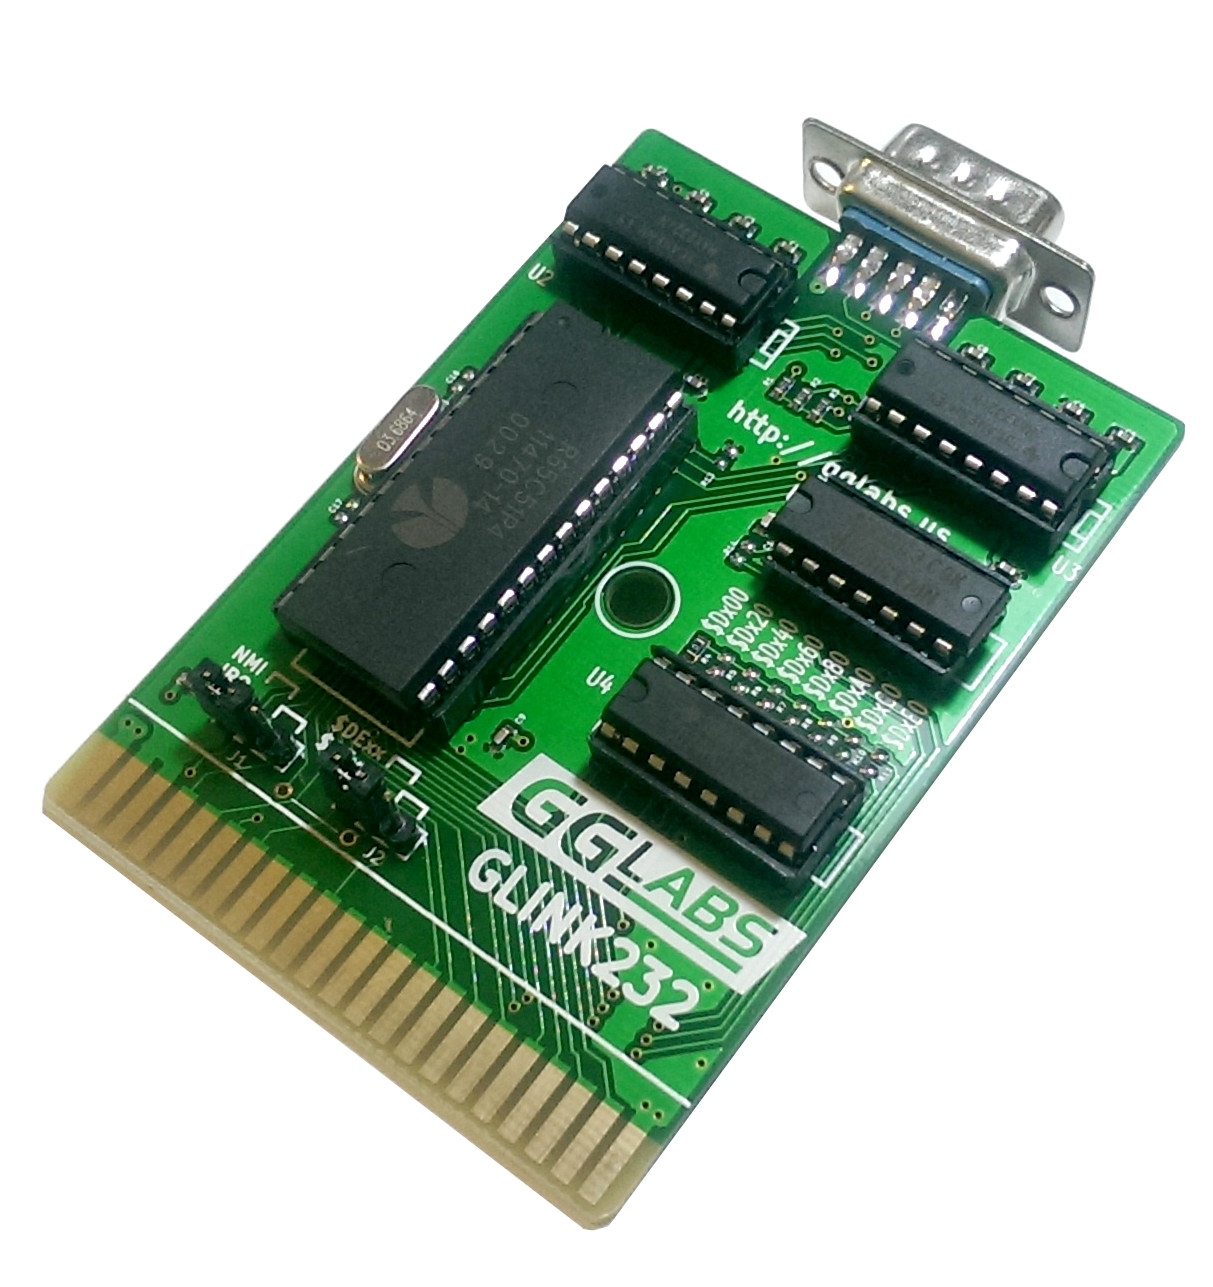 Glink232 Uart Cartridge For Commodore 64 128 Commodorecircuitboardclockjpg Both The And Have A Software Implementation That Limits Useful Speed To 2400 Bauds Work Around This Limitation Dr Evil